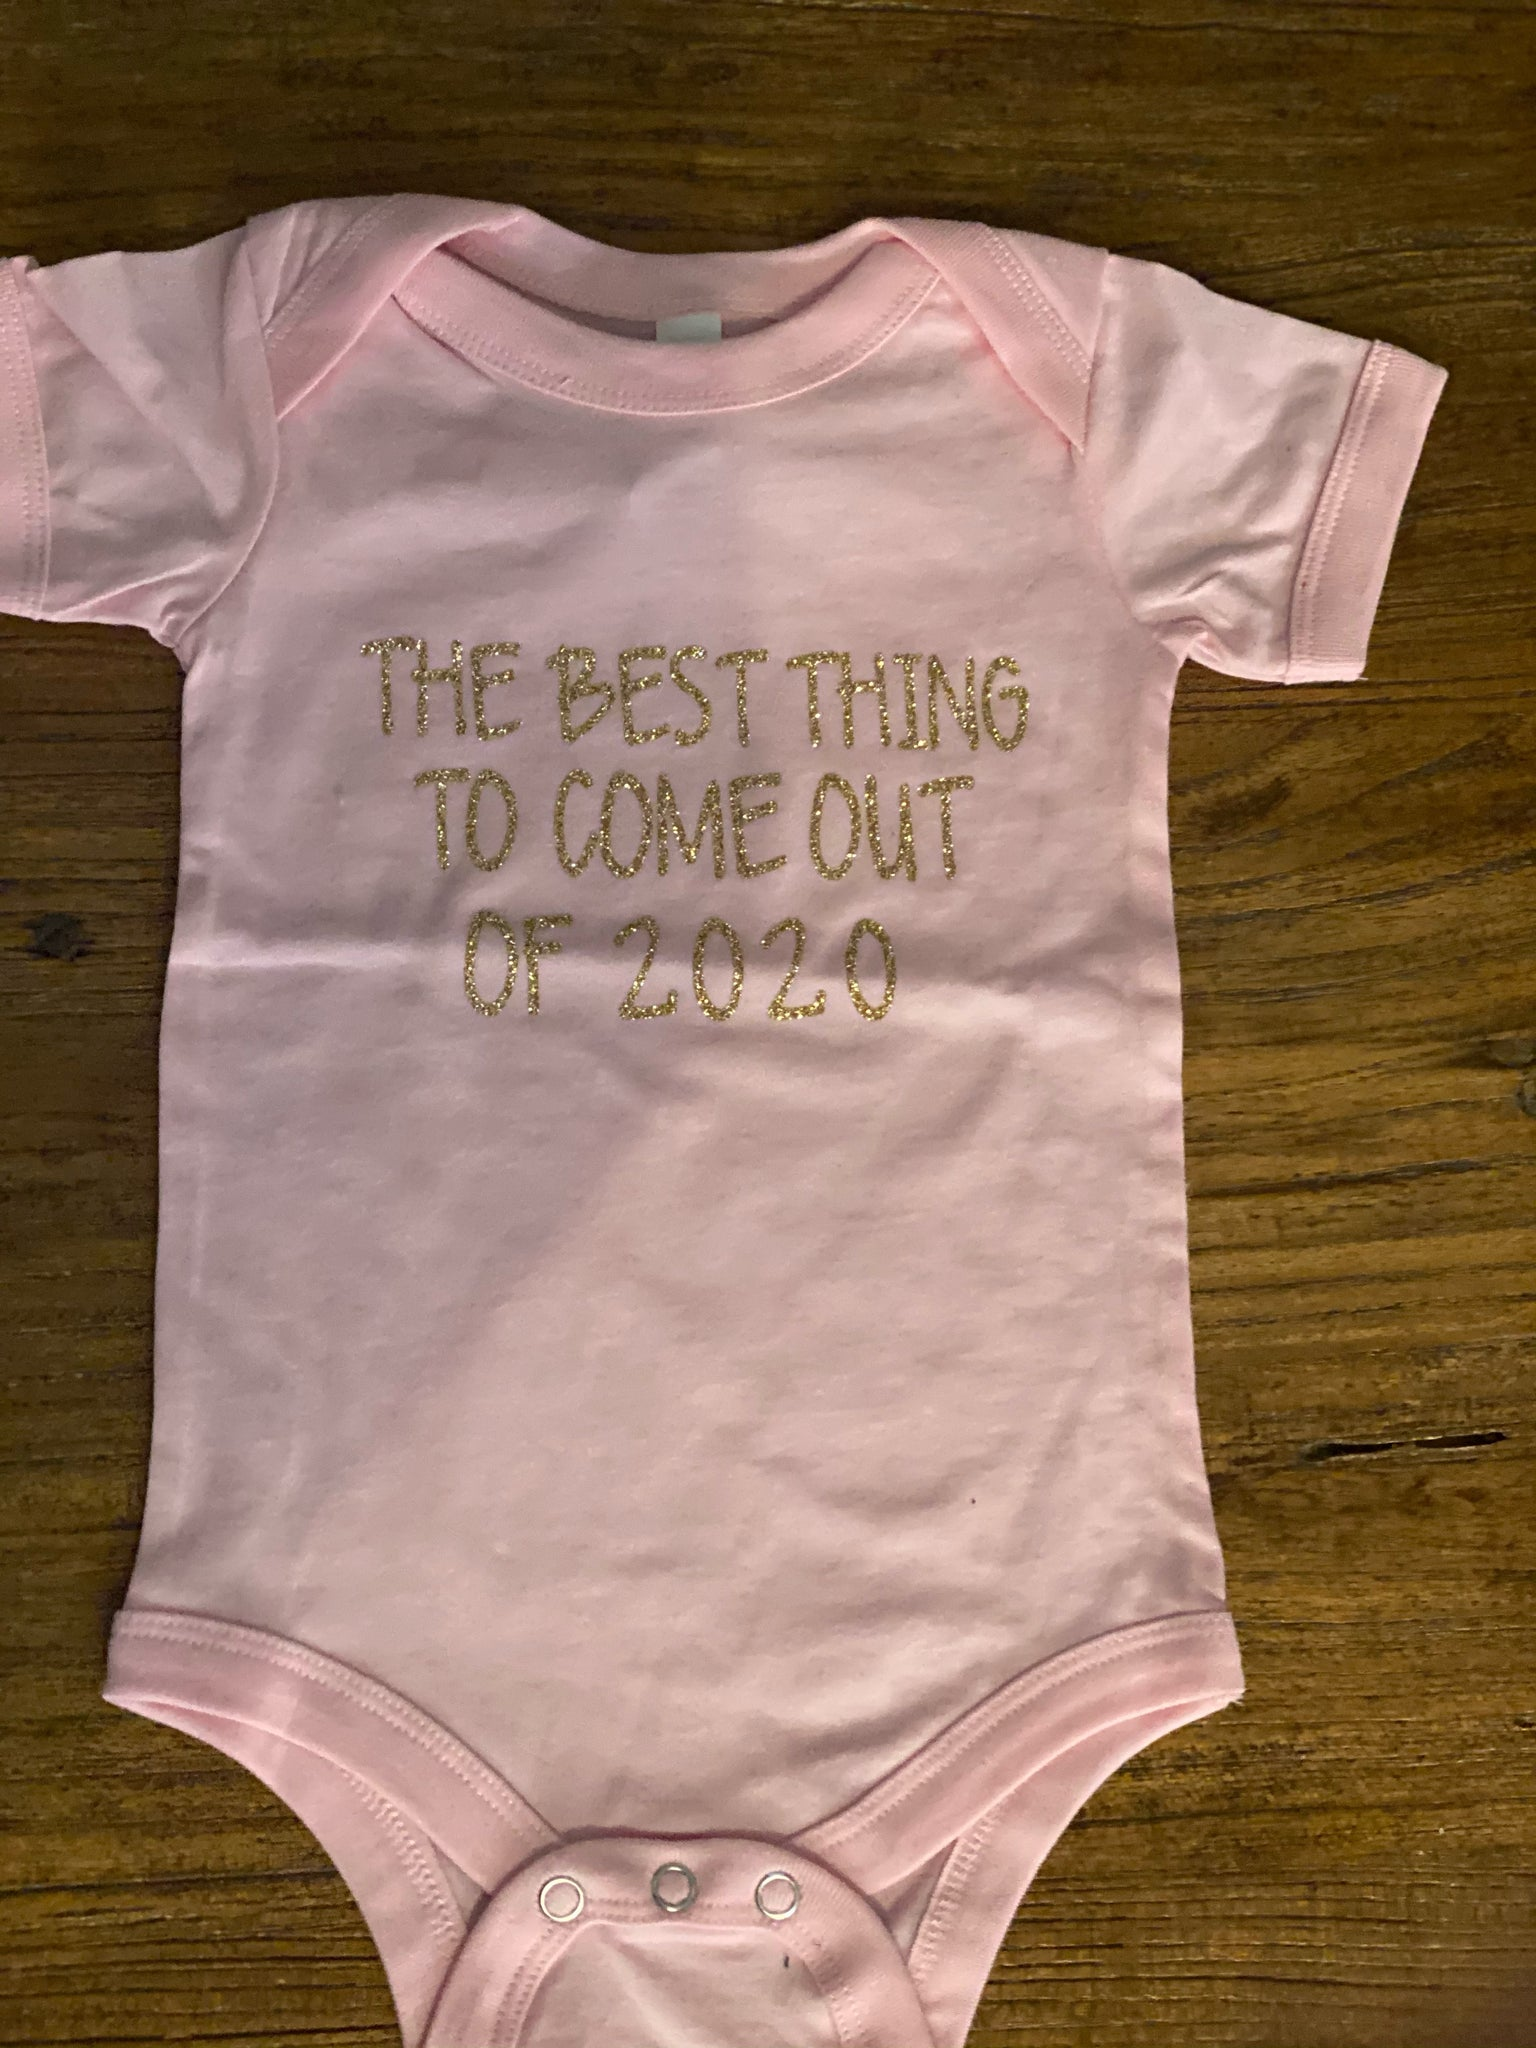 Best Thing of 2020 Onesie